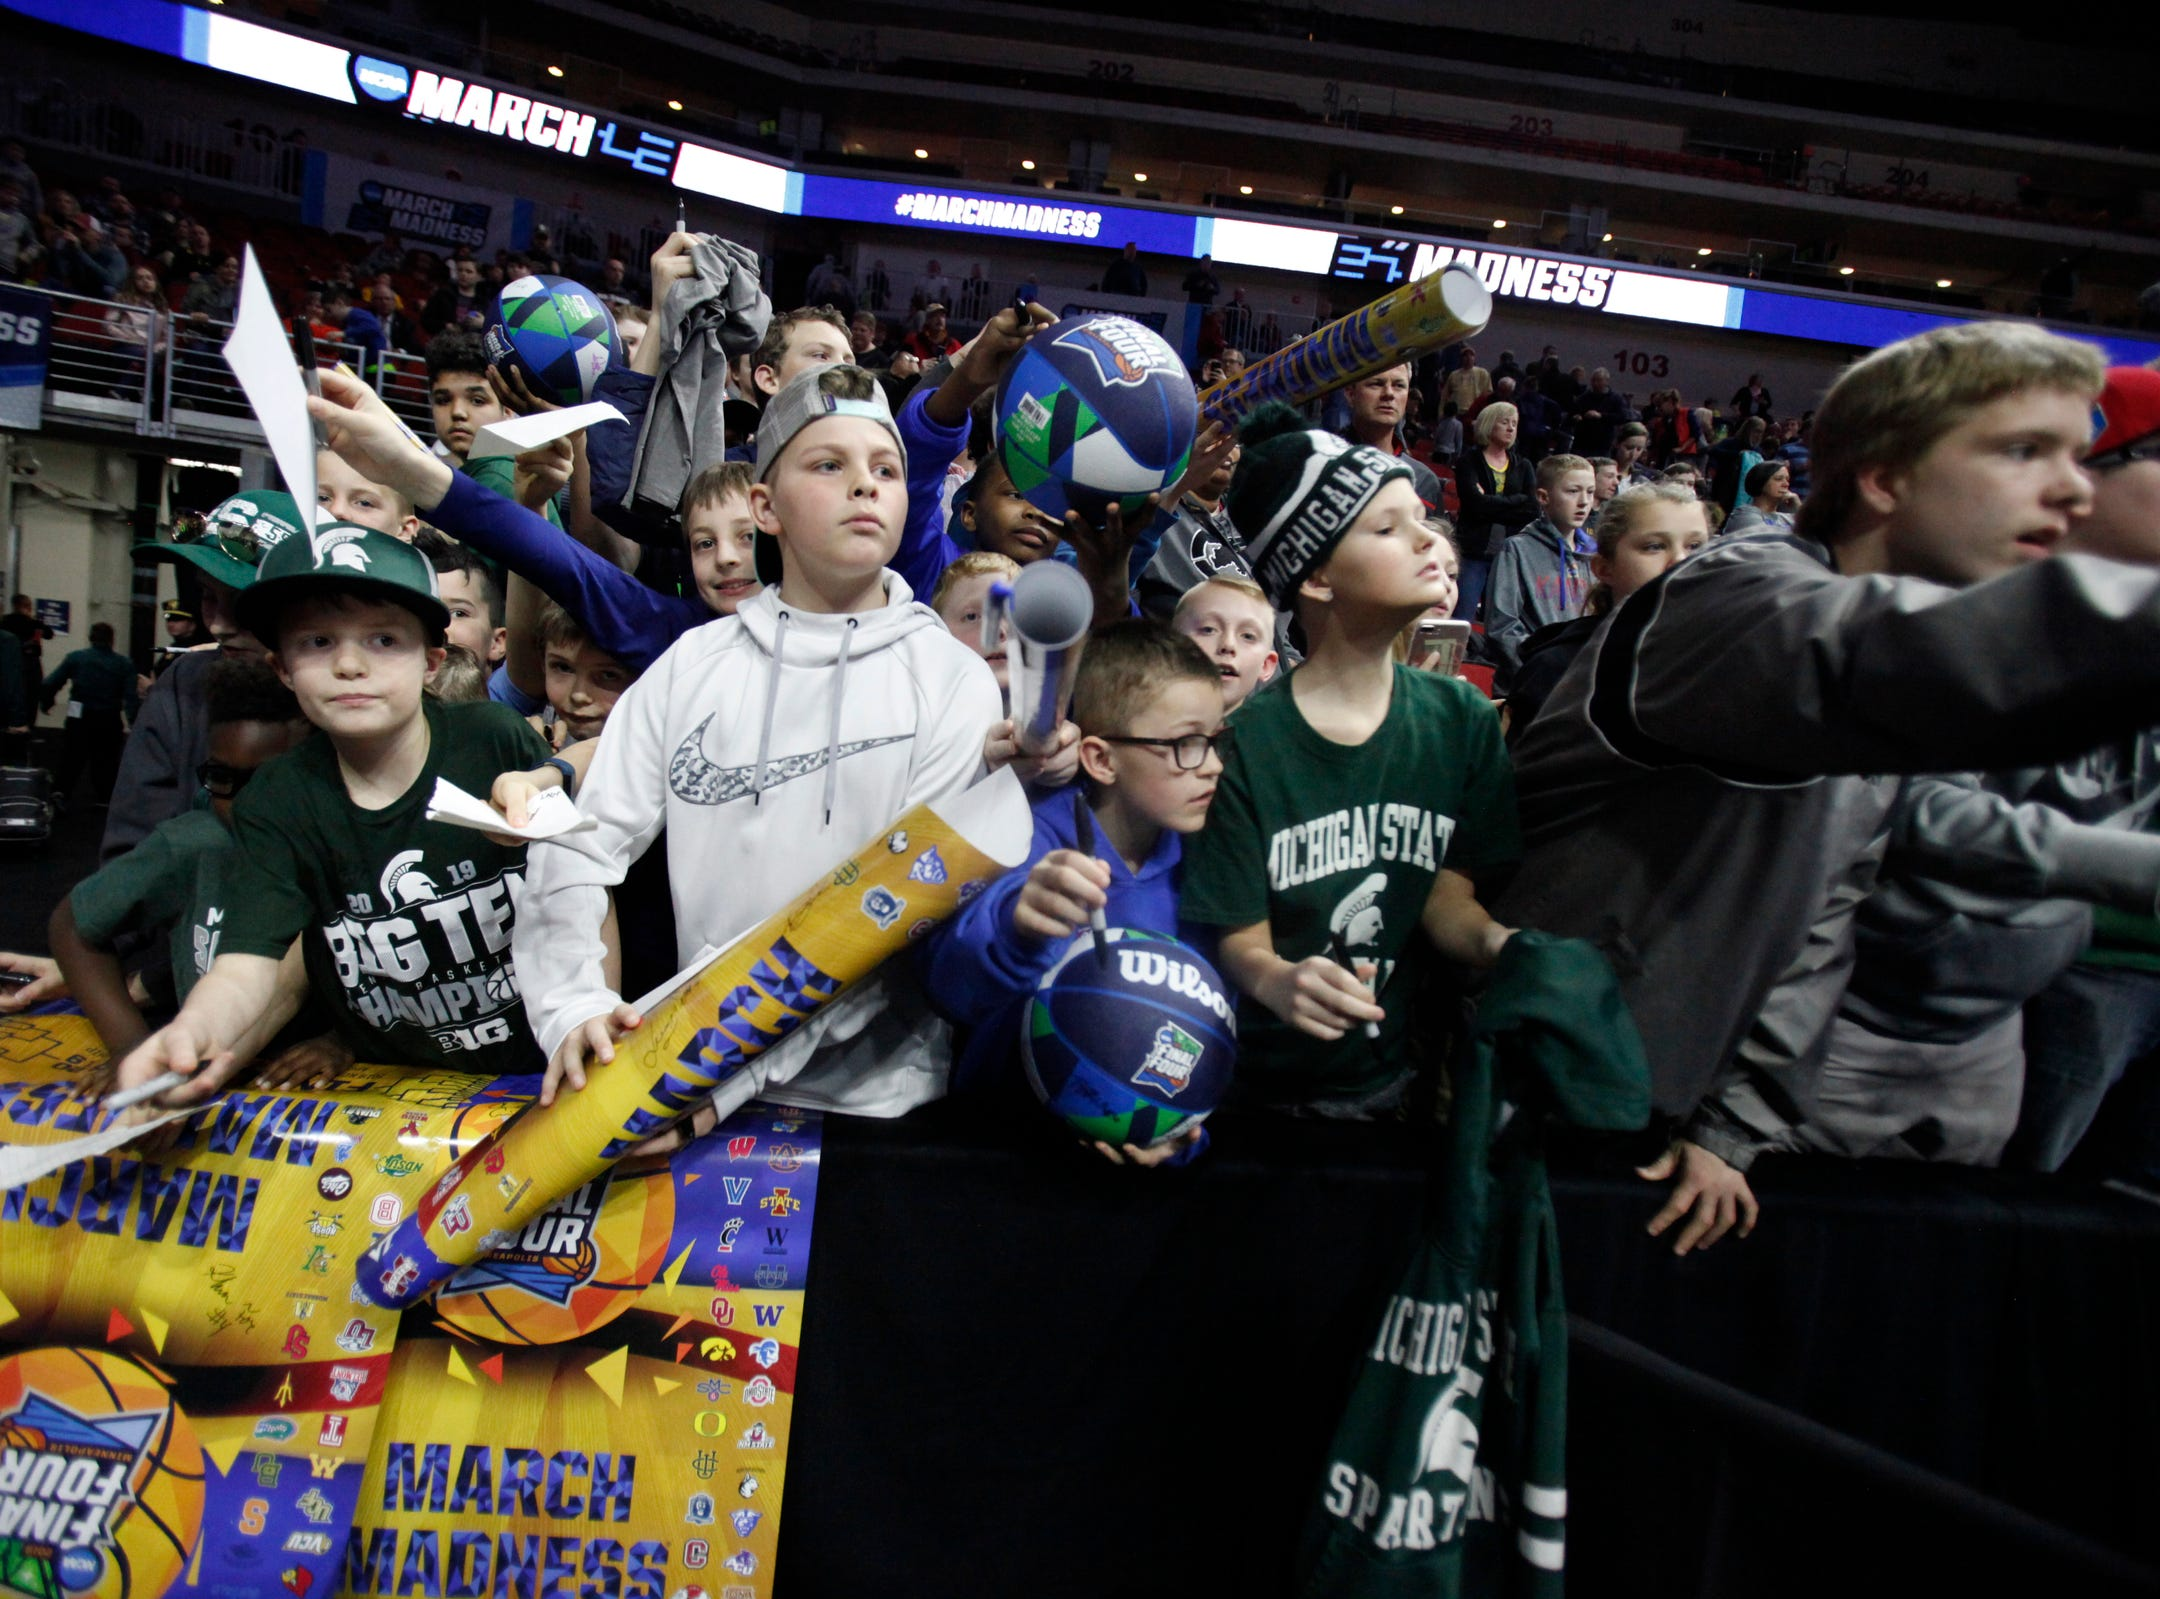 Fans wait for Michigan State players autographs after practice for the first-round NCAA tournament game against Michigan State on Wednesday, March 20, 2019 at Wells Fargo Arena in Des Moines, Iowa.